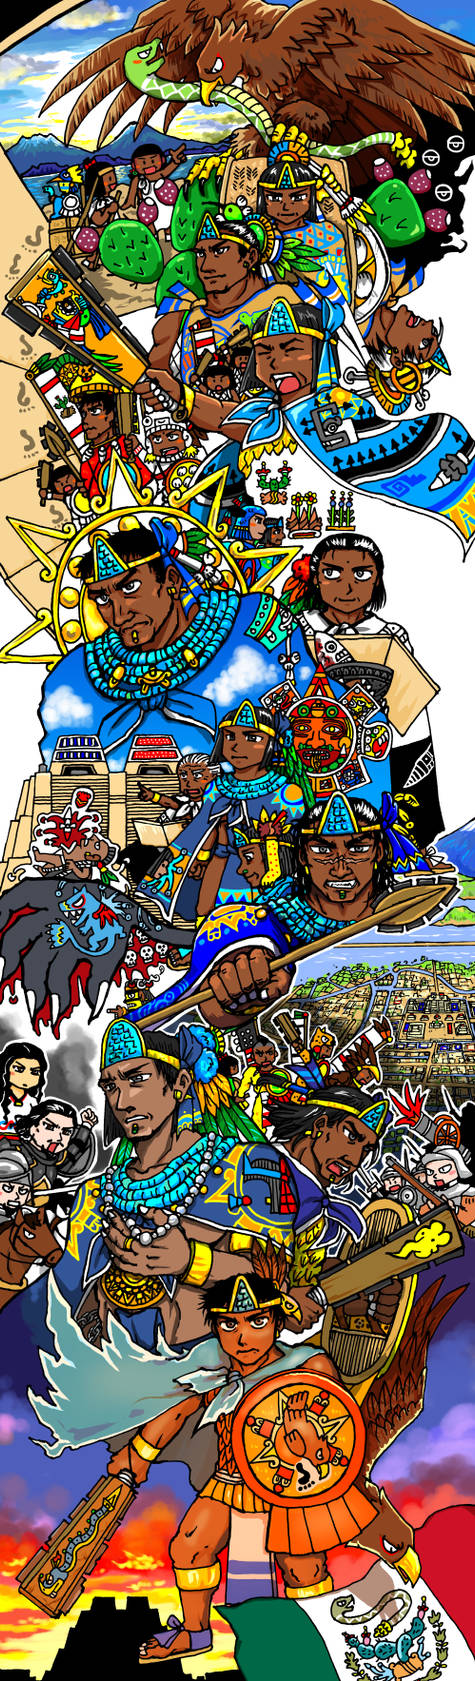 Rulers of Mexico-Tenochtitlan